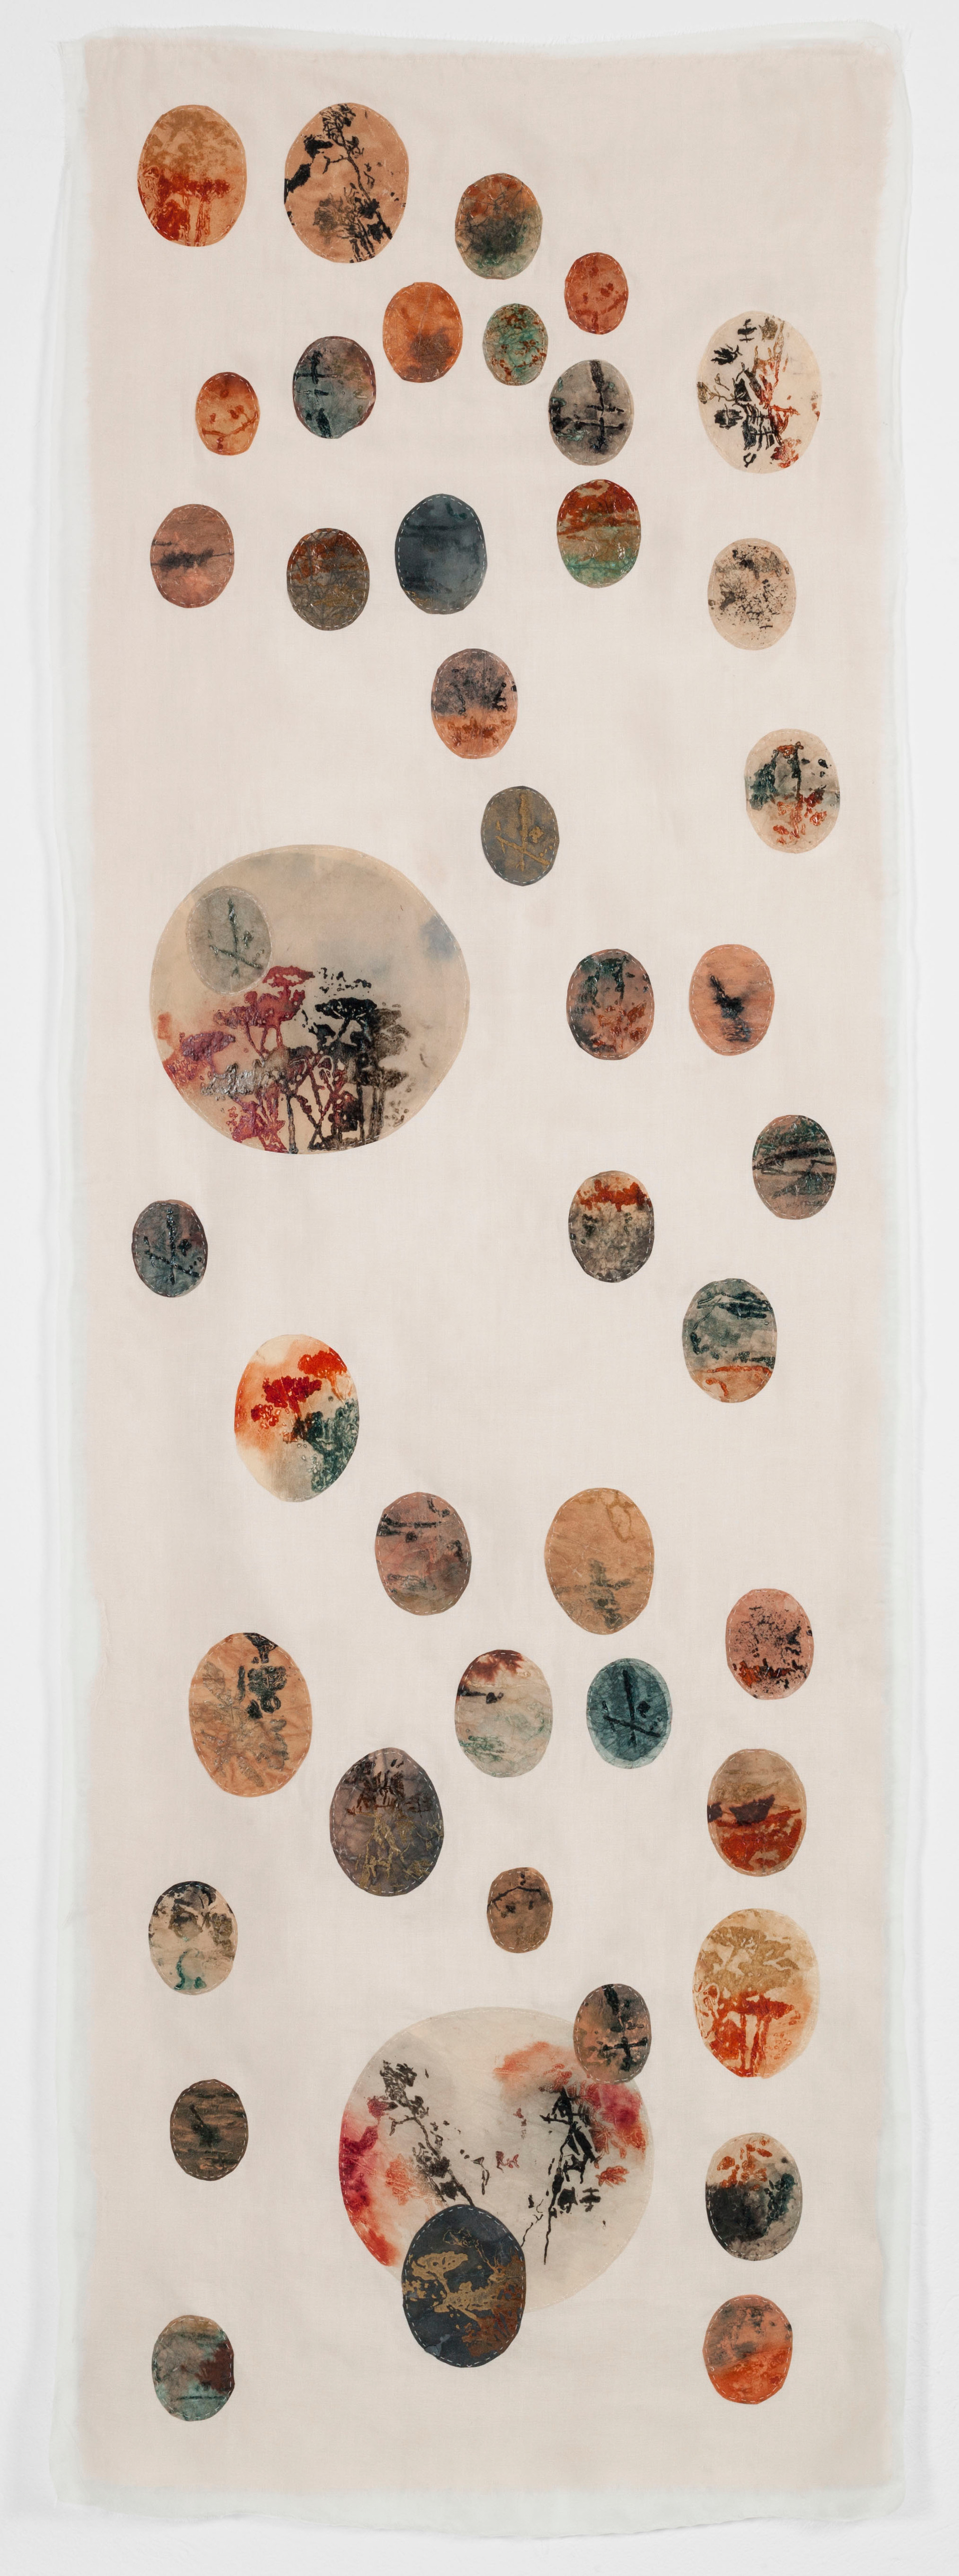 Japanese botany/2013/Paper Sewing Etching/158x54 cm